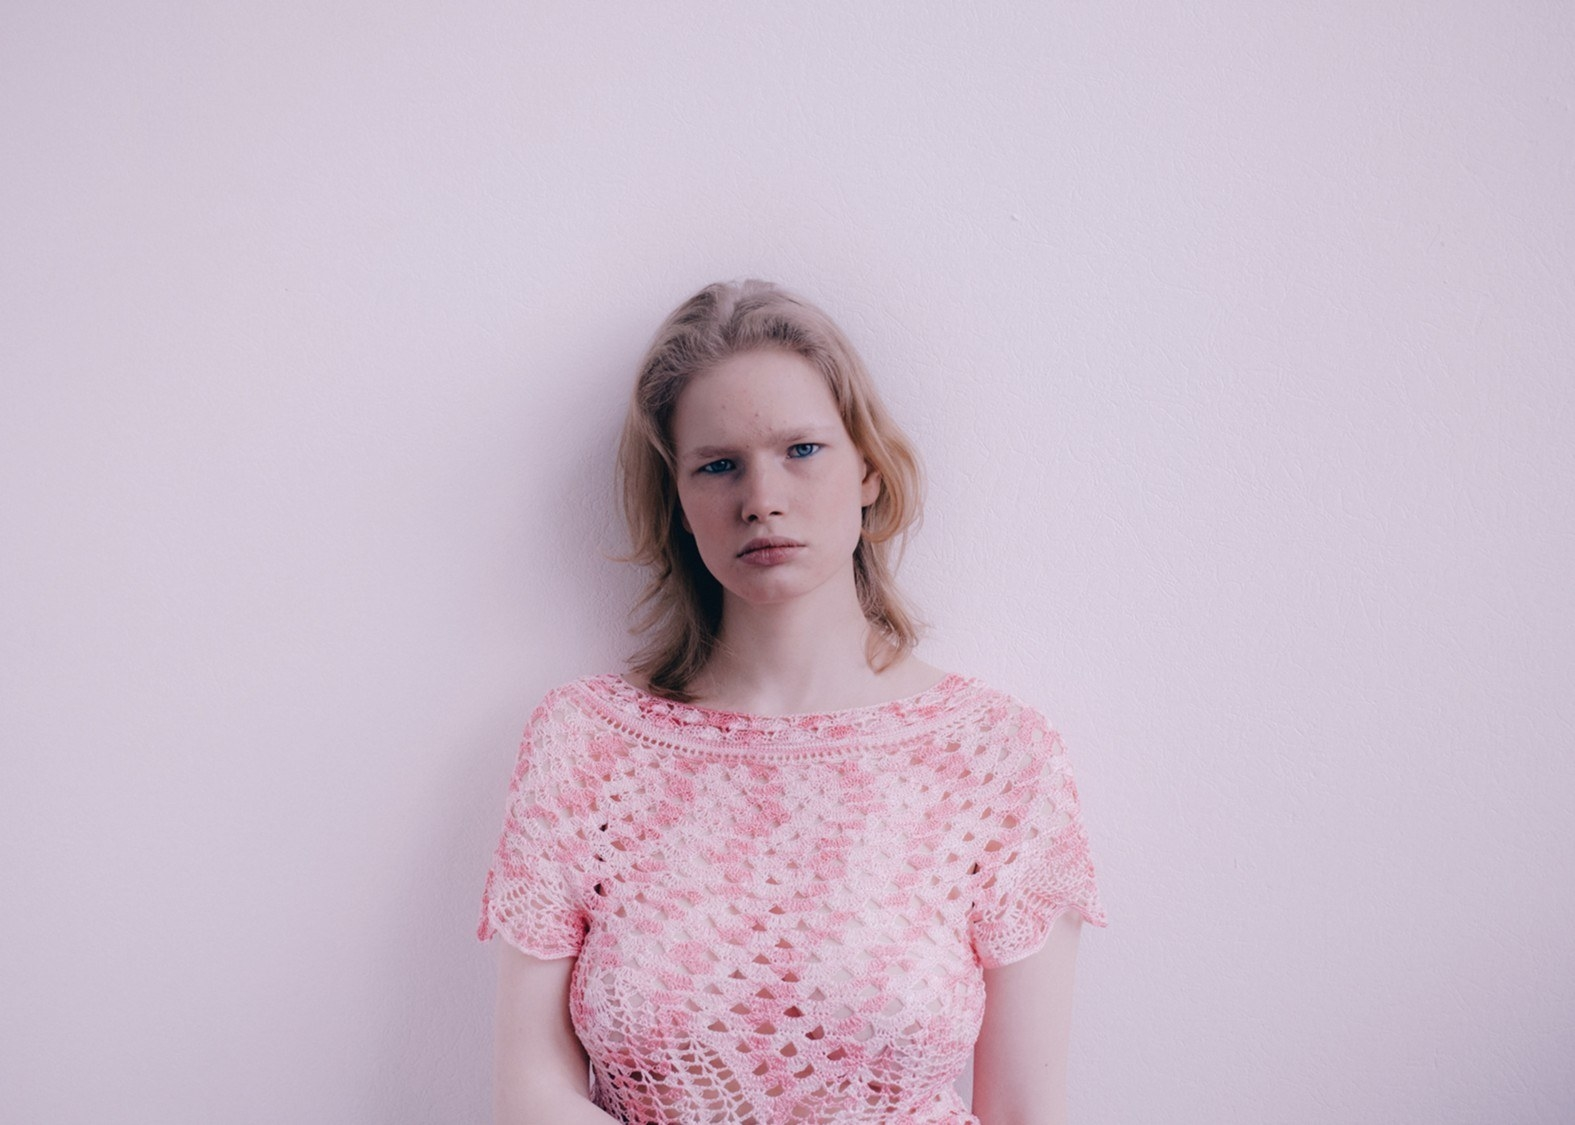 A young girl in a pink knit top against a plain wall, looking at the camera